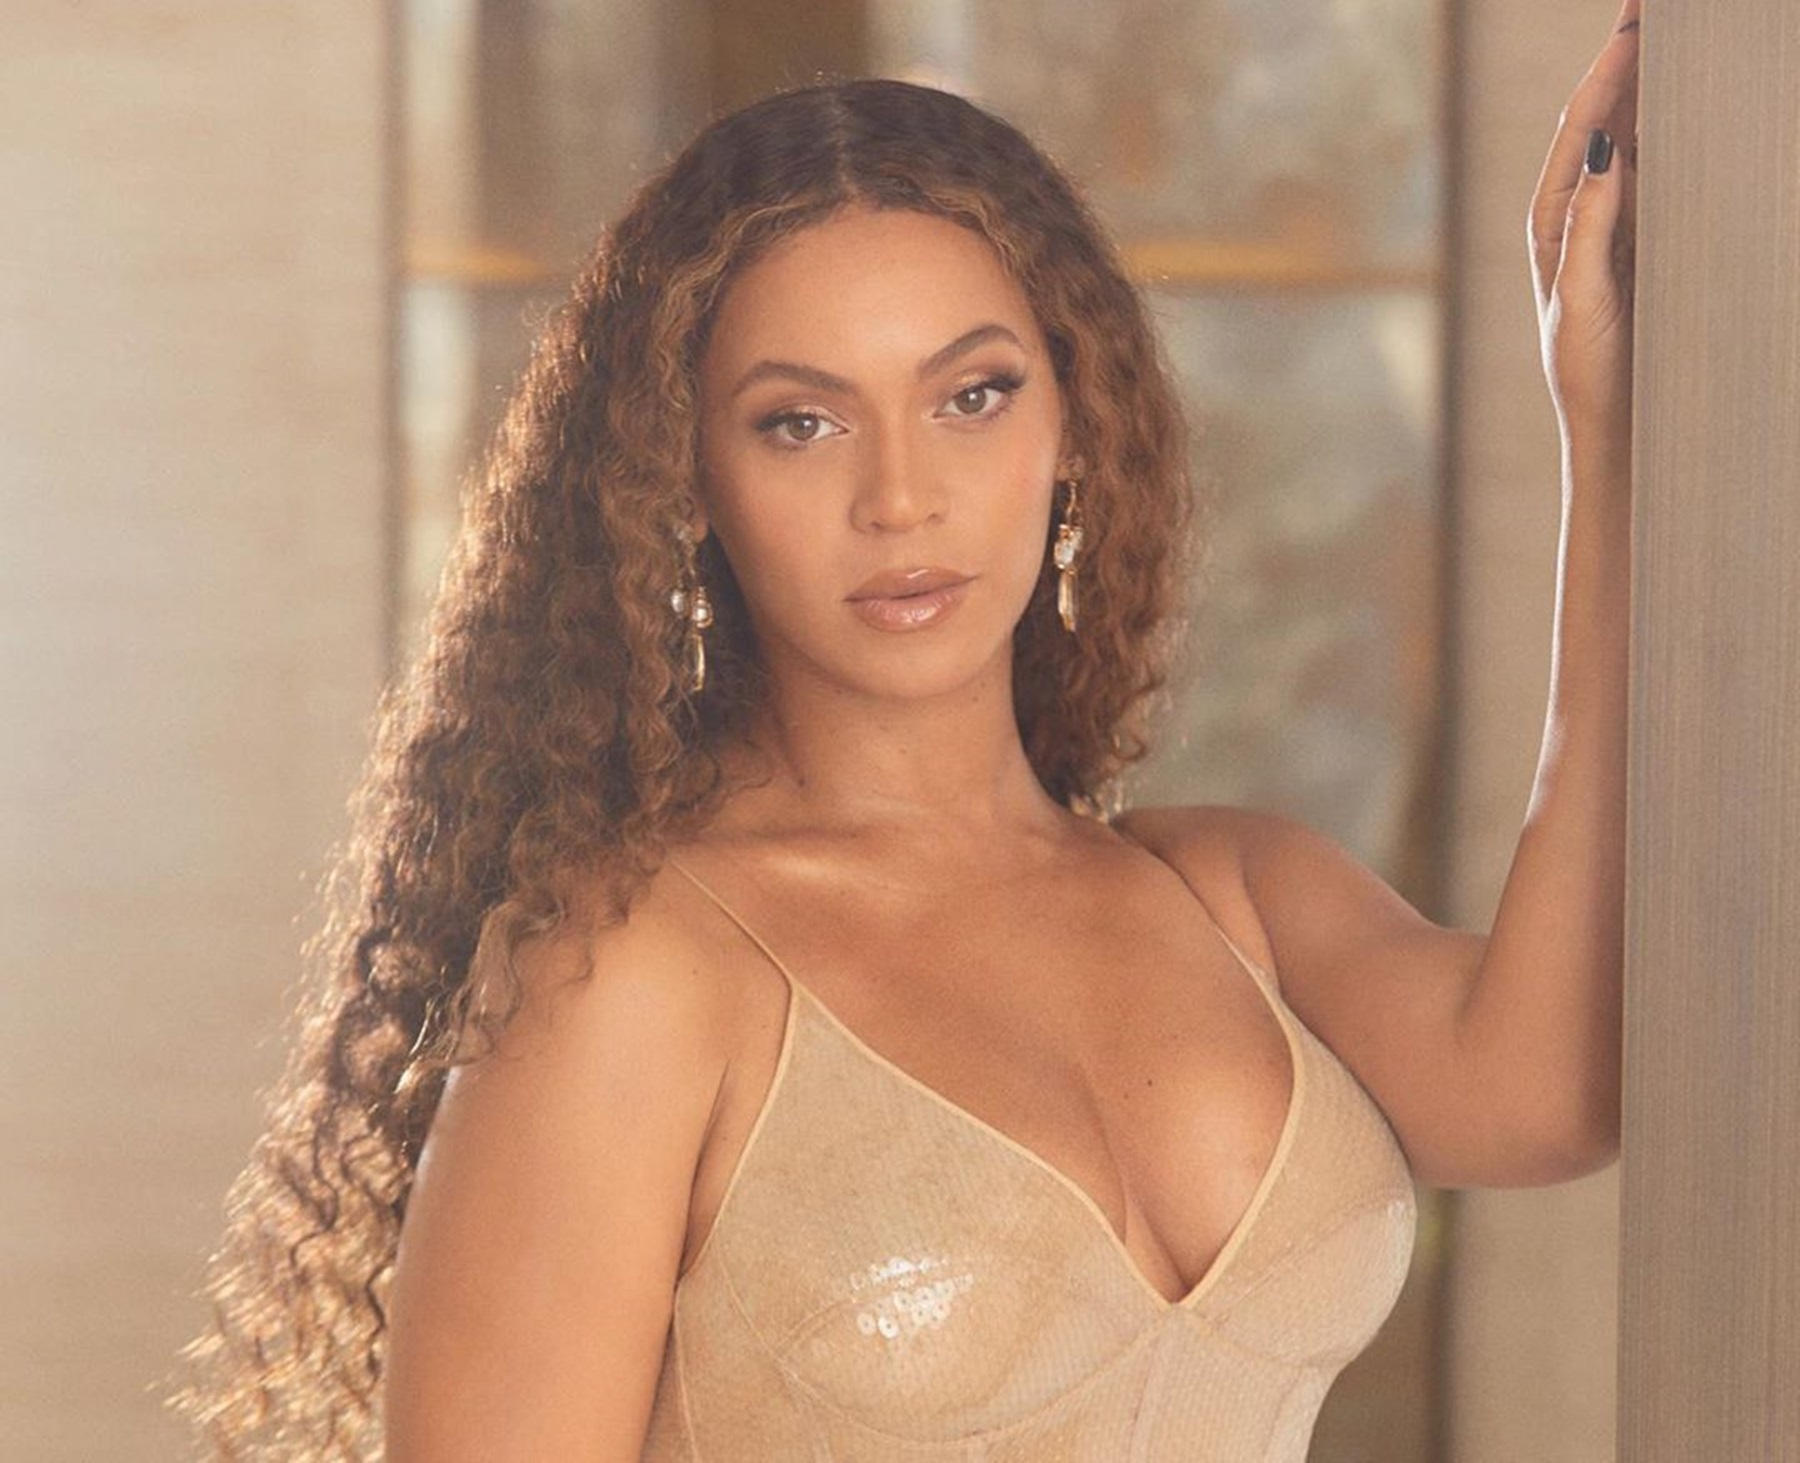 """""""beyonce-shines-like-a-diamond-in-new-photos-at-jay-zs-foundation-gala-in-sheer-dress-and-billion-dollar-purse"""""""